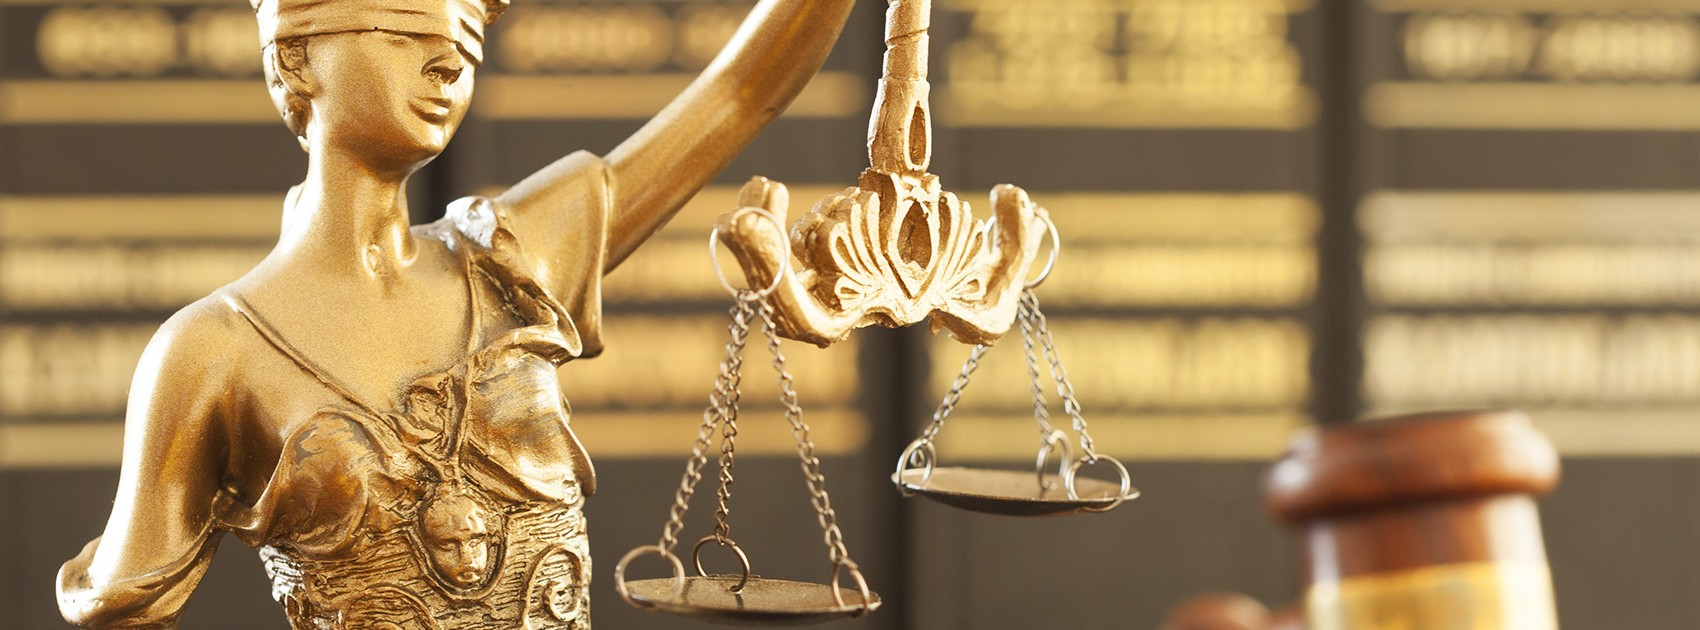 Central Queensland Legal, CQ, ROckhampton, Yeppoon, Solicitor, Lawyer, family, criminal, traffic, wills, conveyancing, commercial